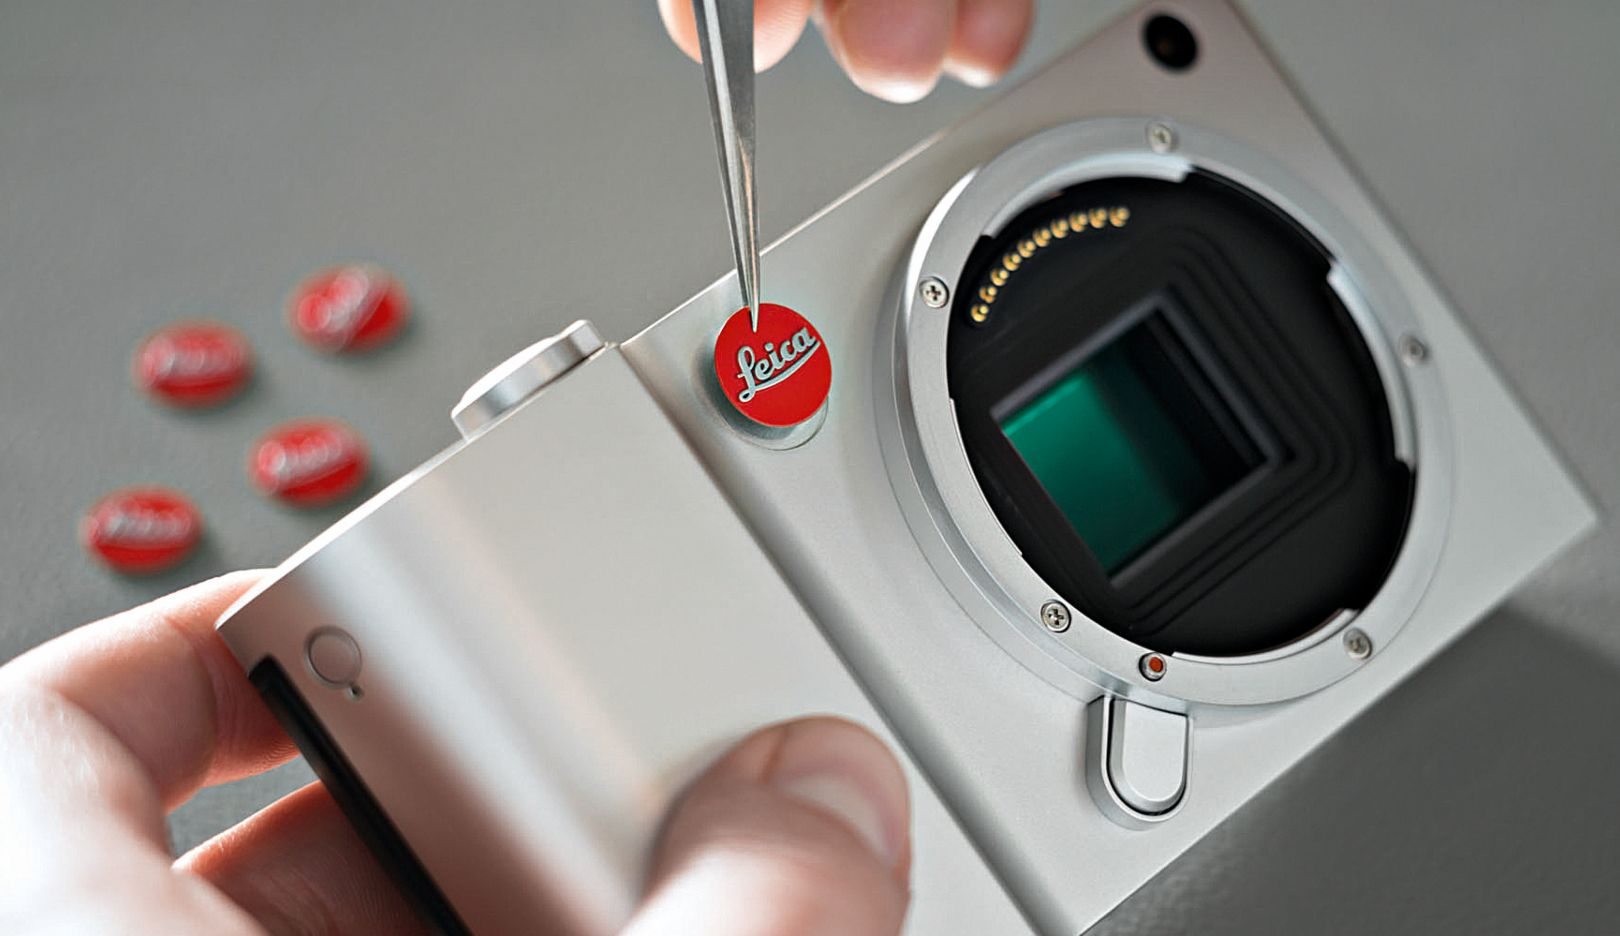 The Leica (Photo: Leica)